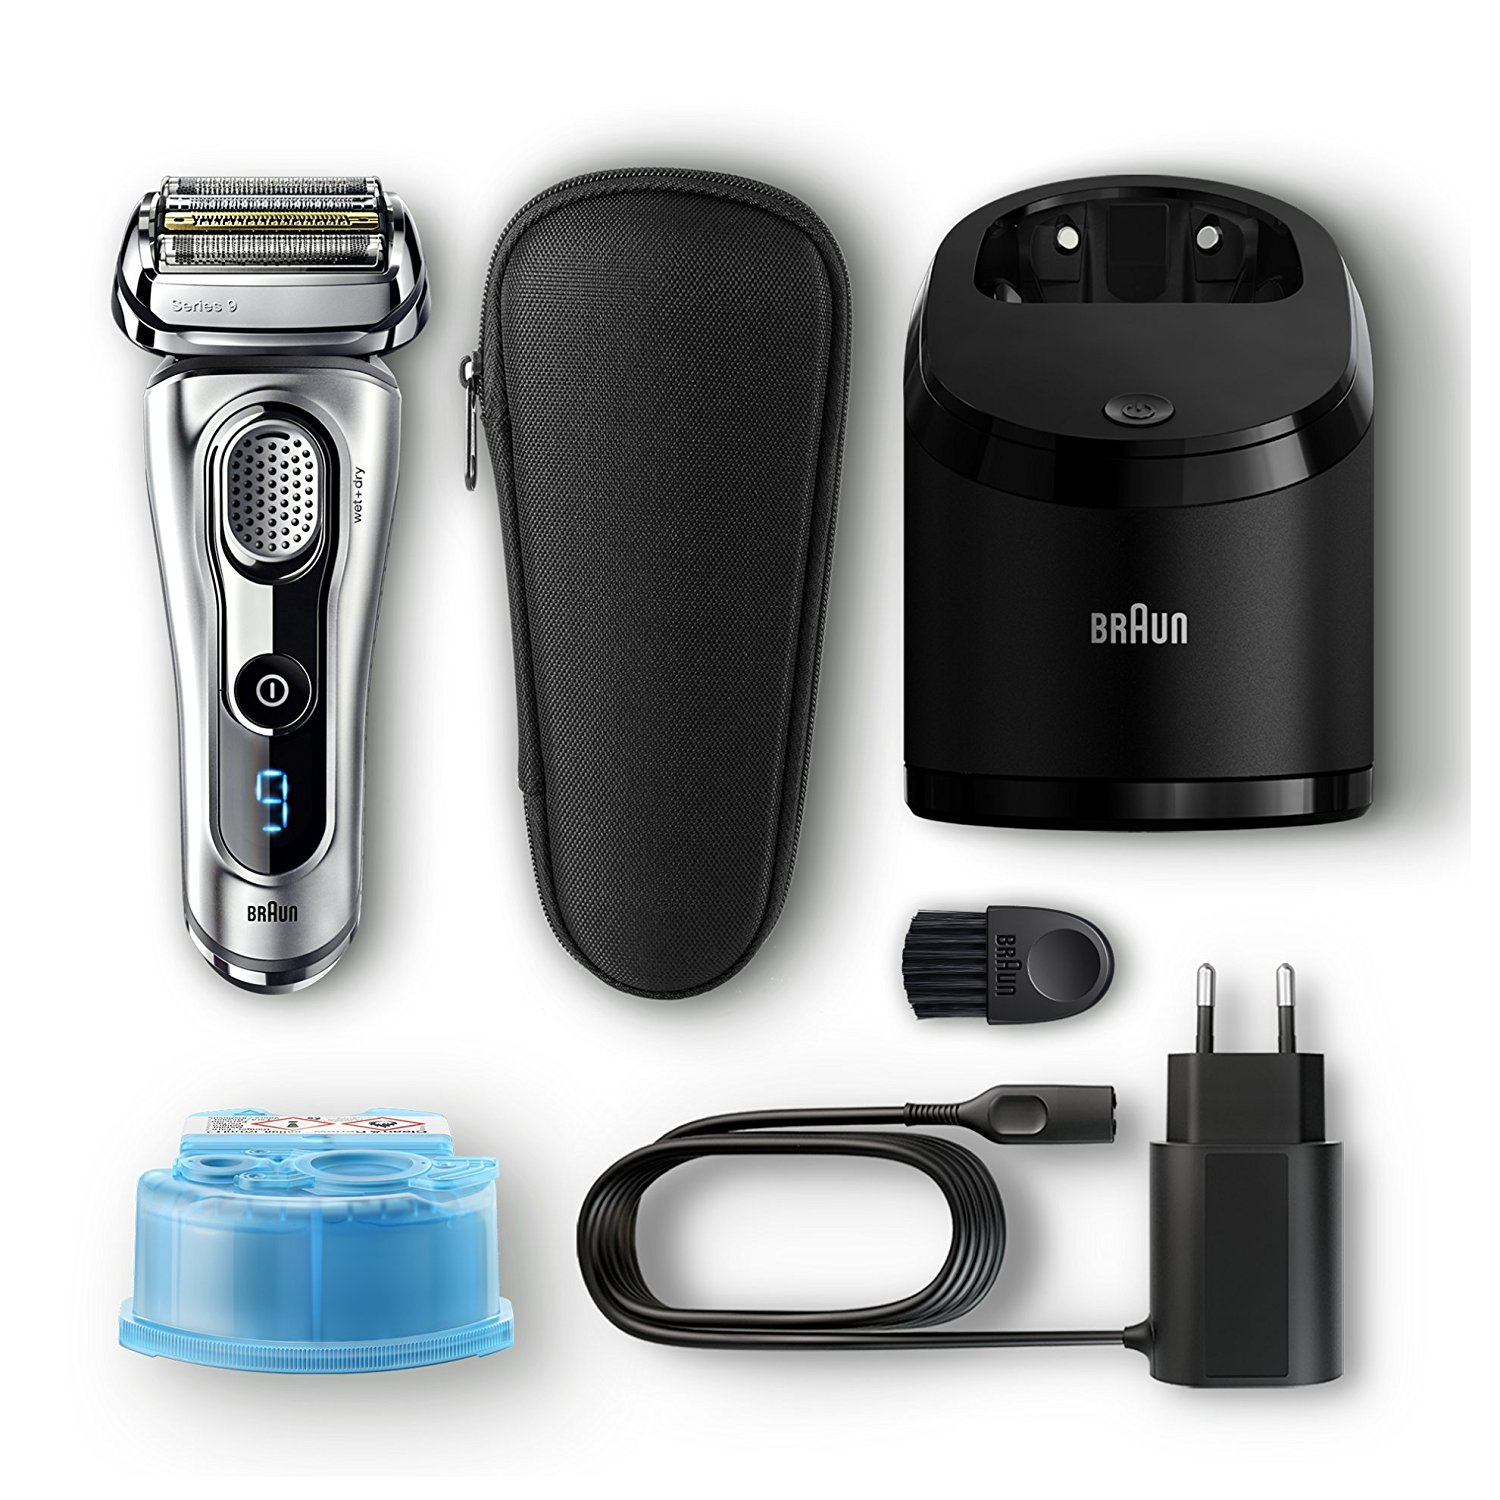 braun series 9 shaver review droidhorizon. Black Bedroom Furniture Sets. Home Design Ideas